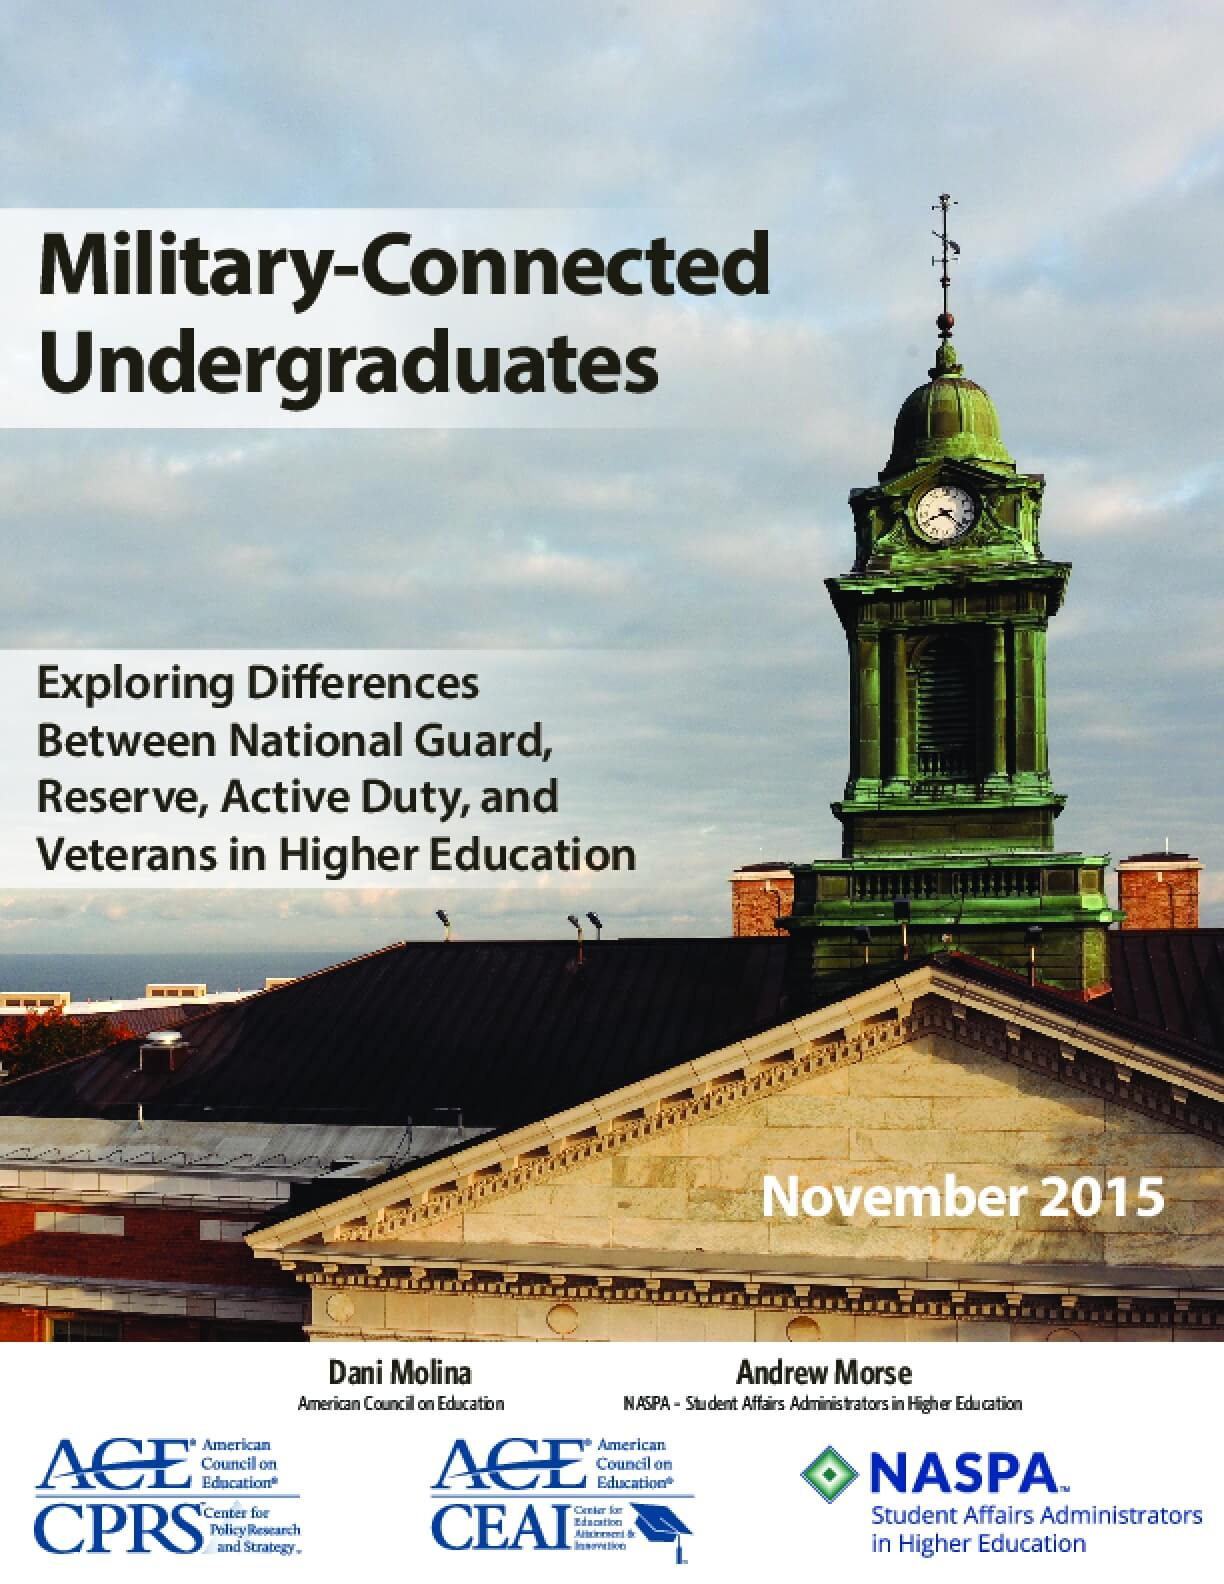 Military-Connected Undergraduates: Exploring Differences Between National Guard, Reserve, Active Duty, and Veterans in Higher Education